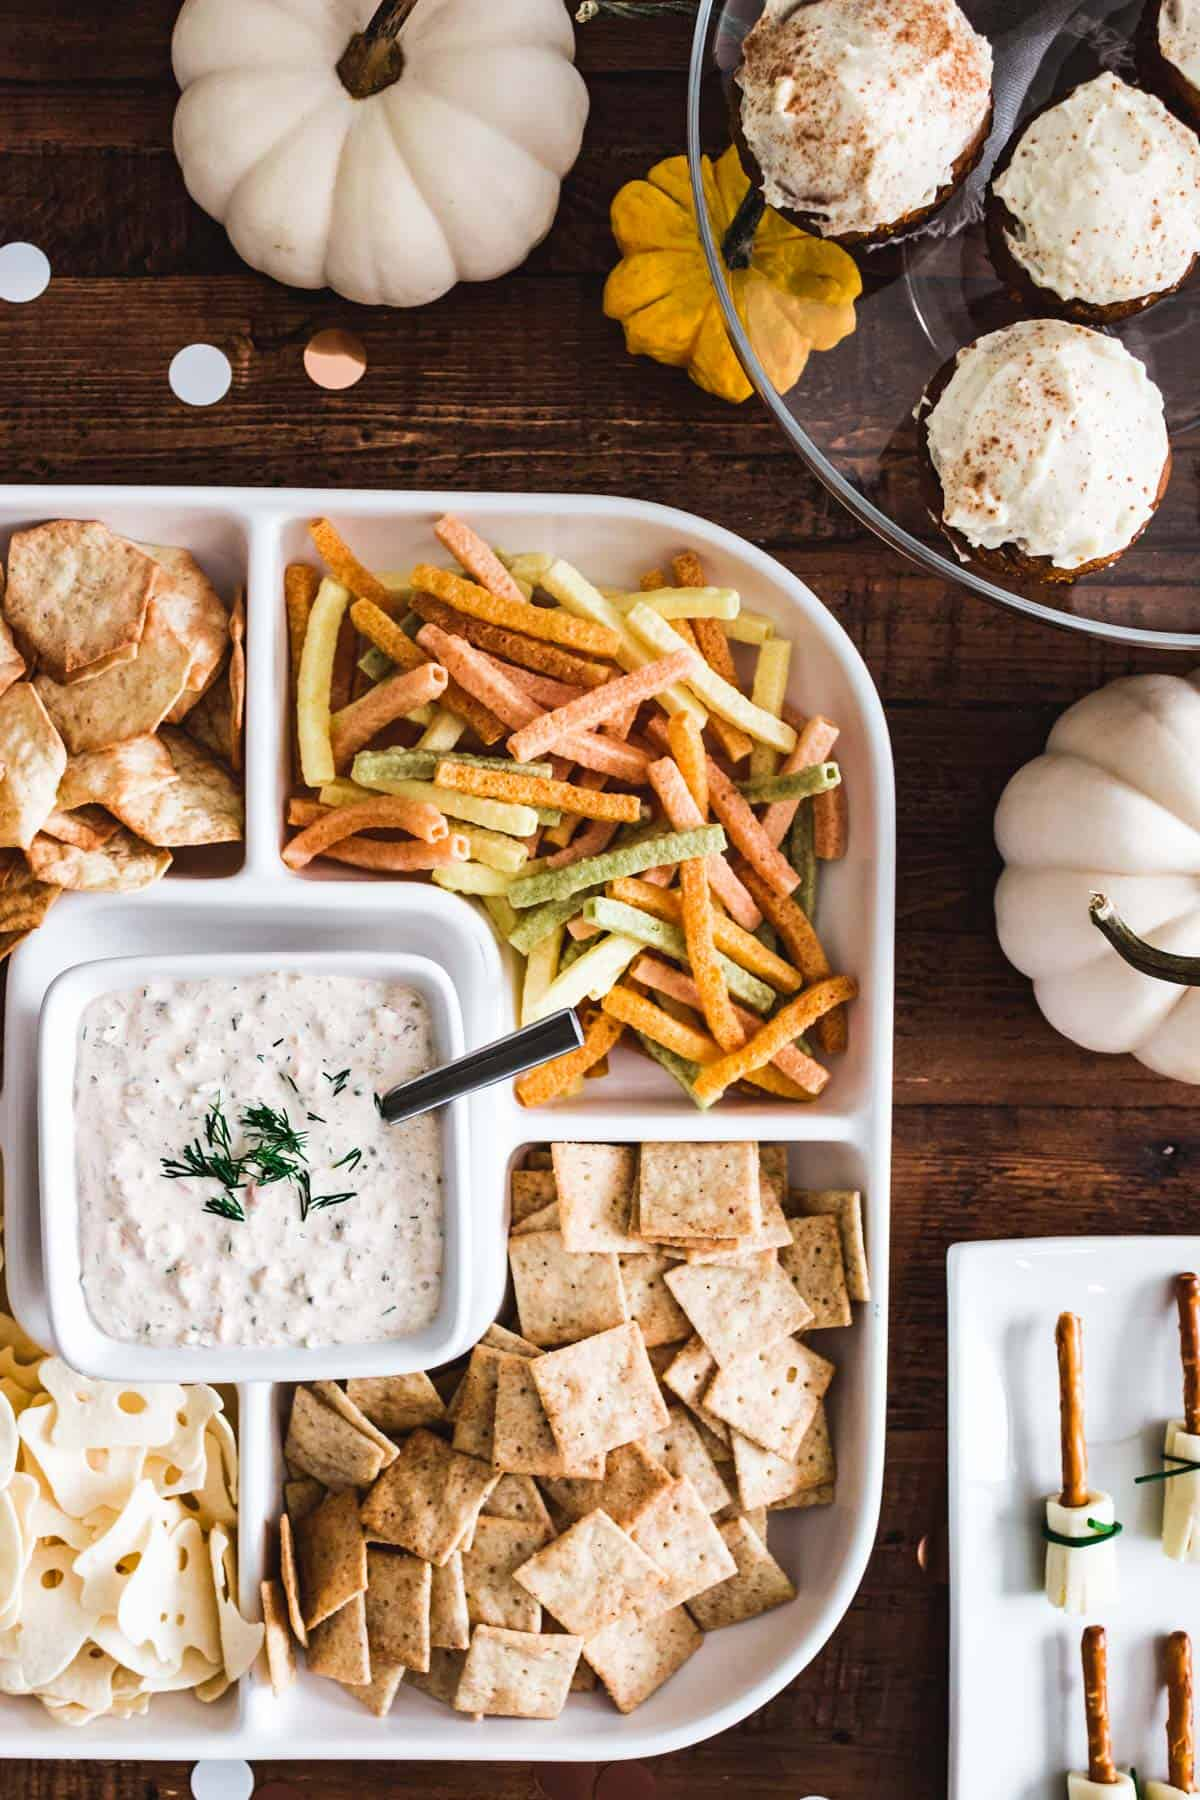 Smoked salmon dip with dill and capers served with an assortment of chips and crackers.